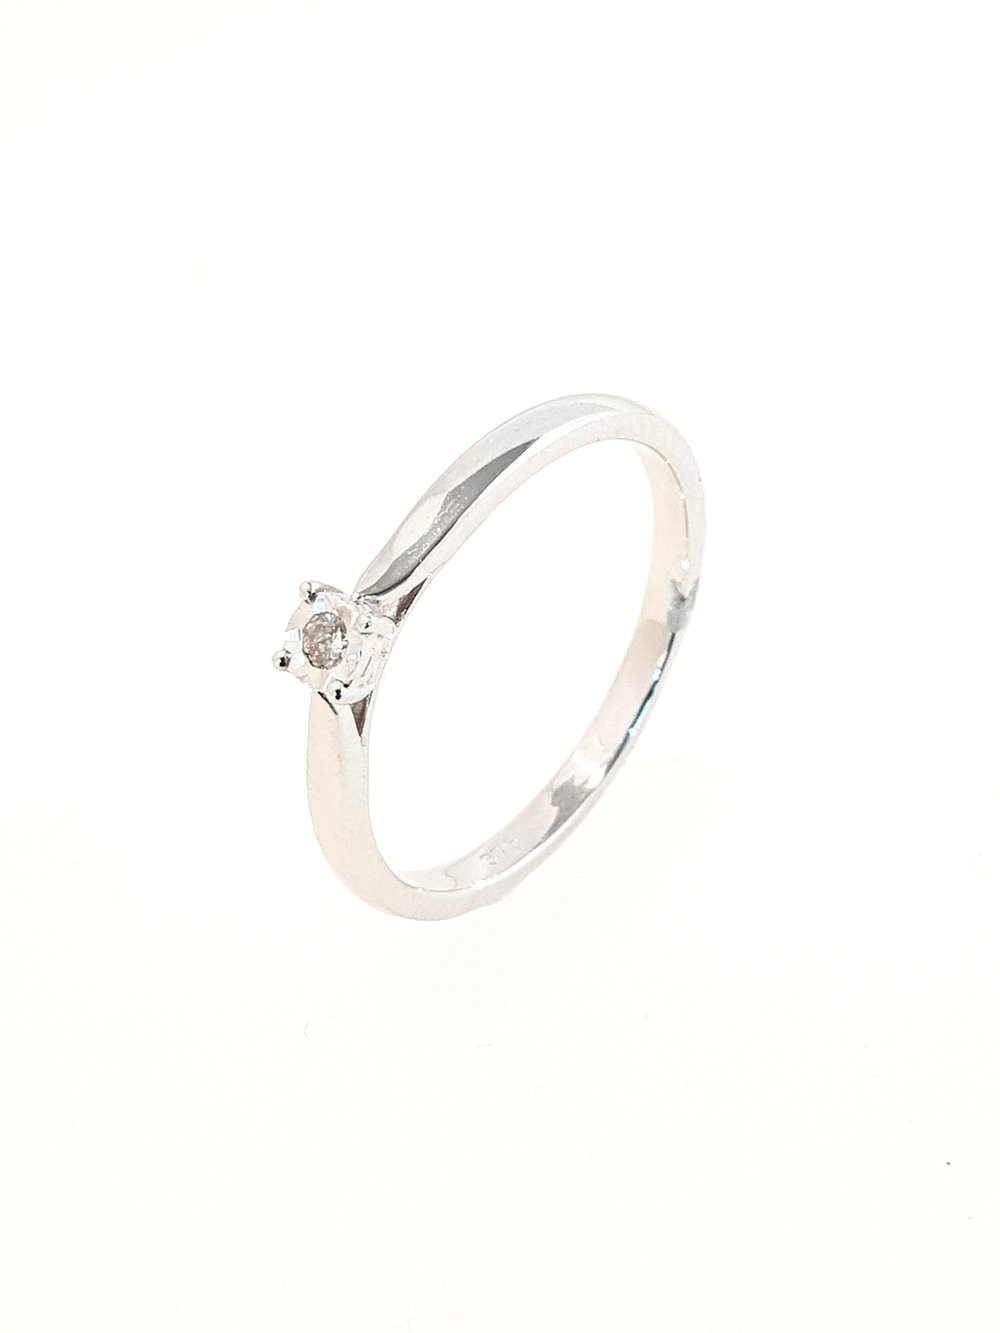 9ct White Gold Diamond Ring  .04ct  Stock Code: G1958  £300